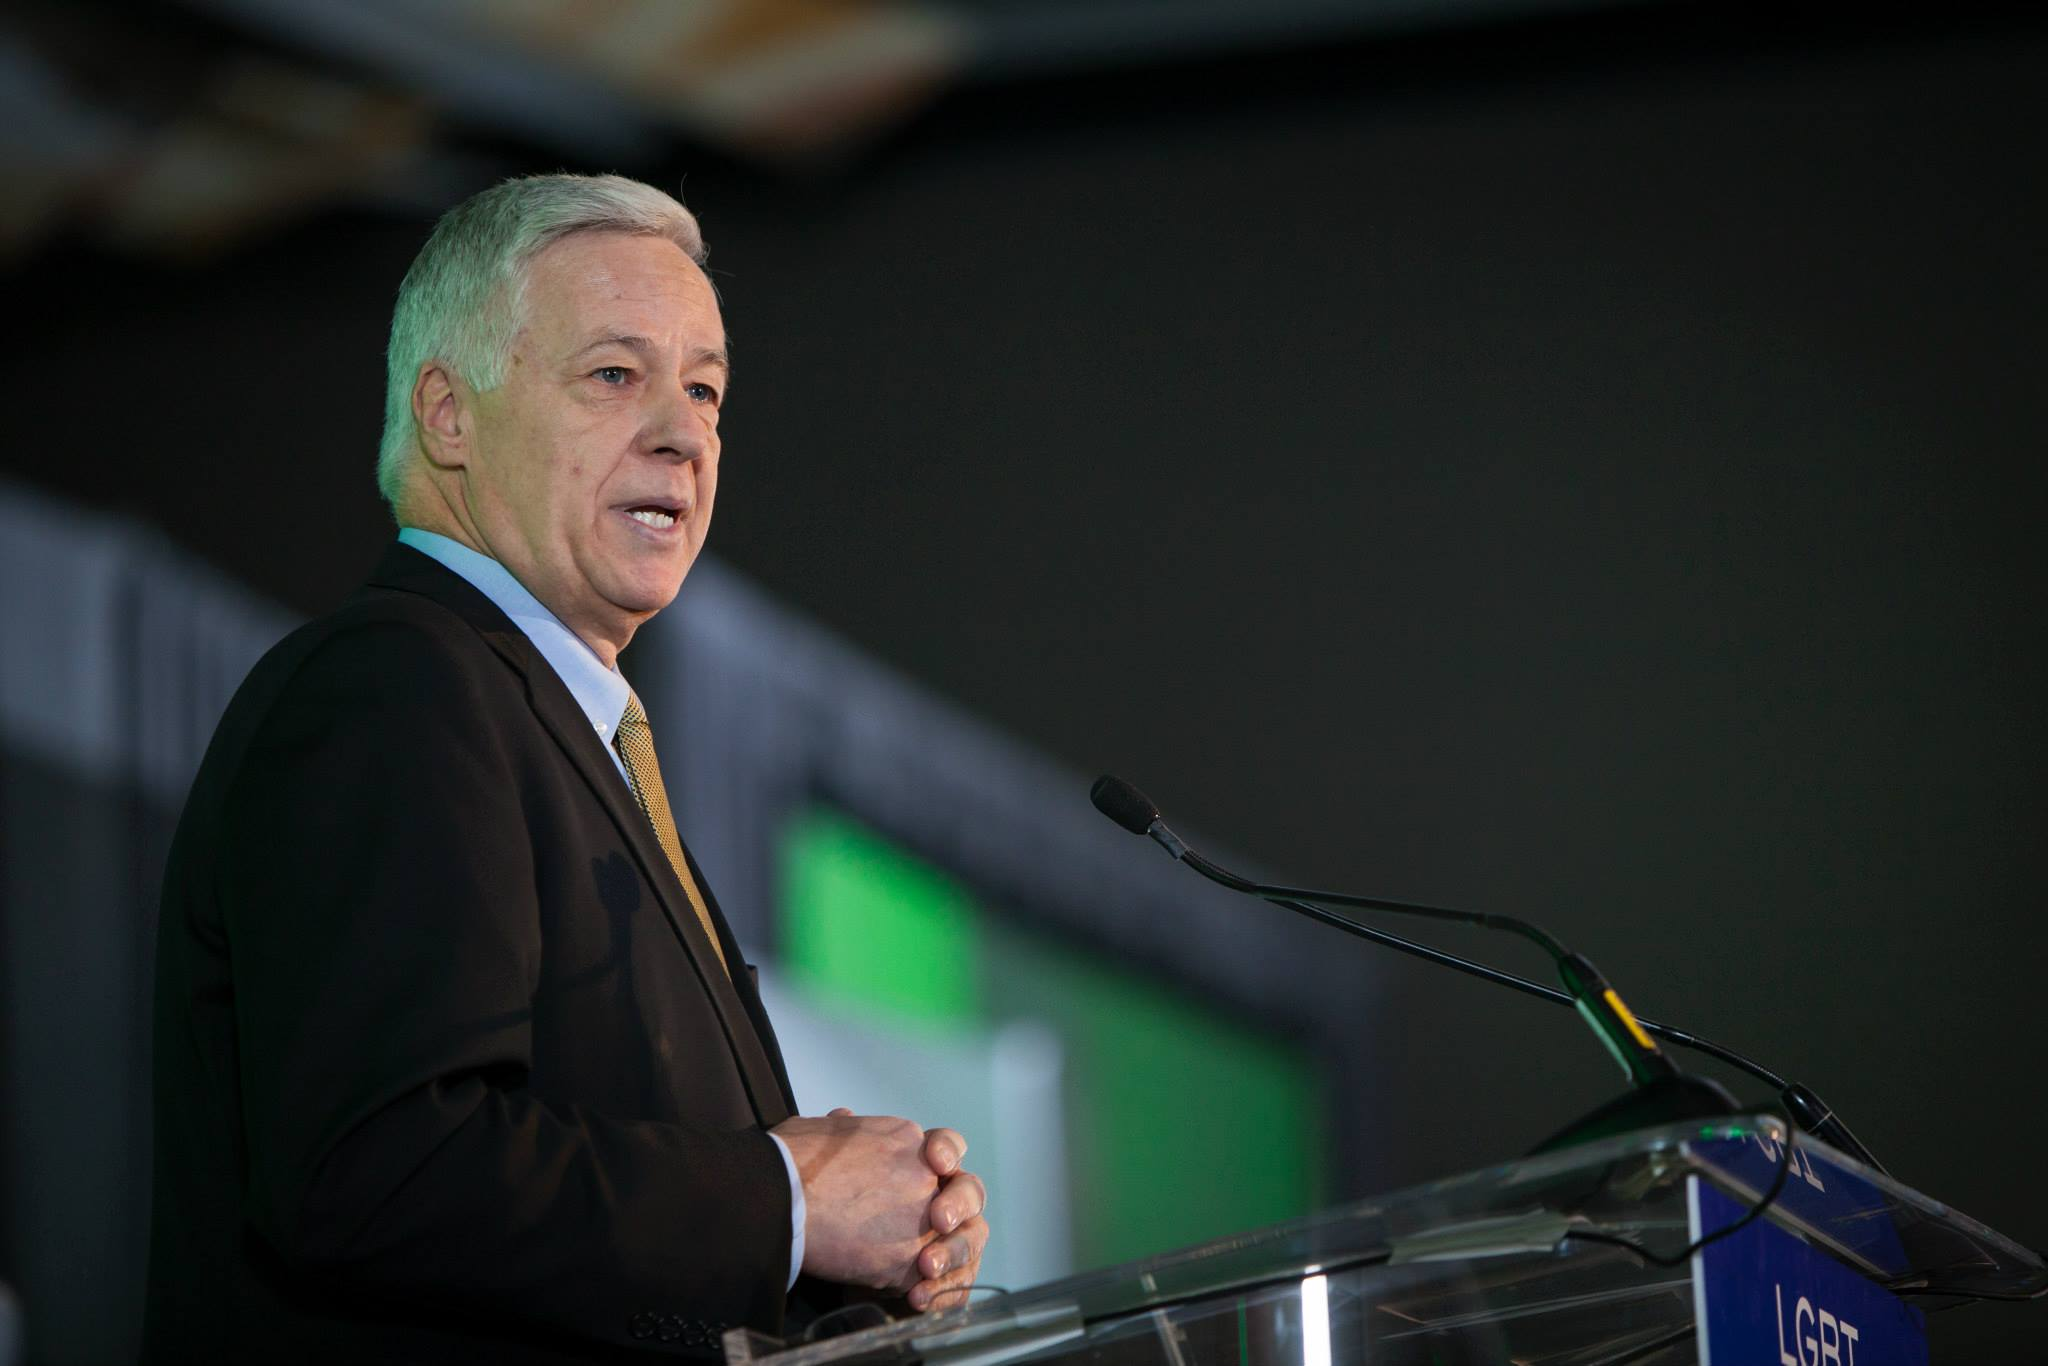 U.S. Rep. Mike Michaud of Maine speaks at the International LGBTQ Leaders Conference in Denver in December 2013.